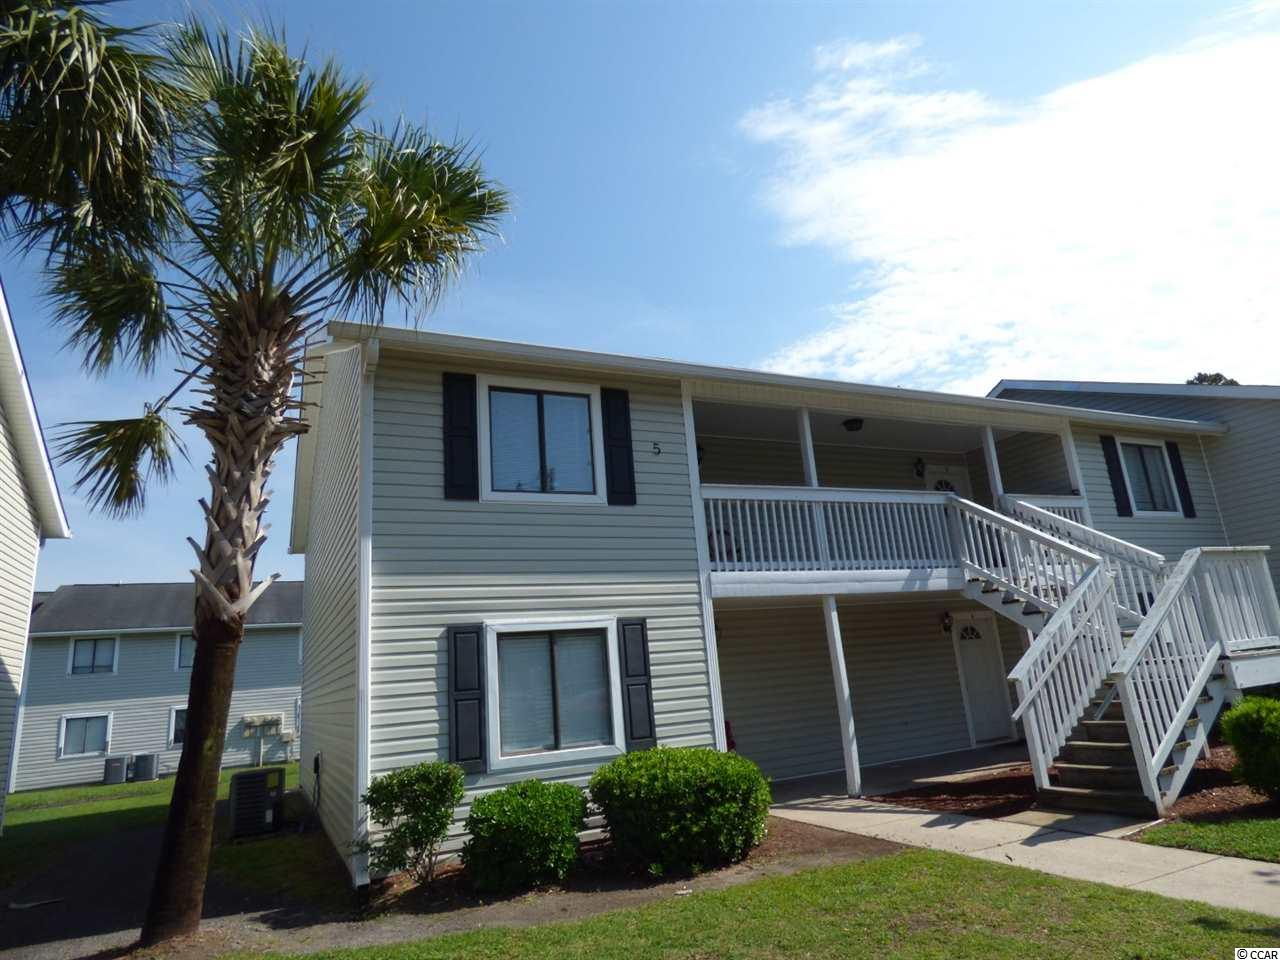 Great investment opportunity located at Coastal Villas next to CCU. This 2 Bed/ 2 Bath 2nd floor condo has large bedrooms, that have their own its own full bathrooms. This condo has a full kitchen with a breakfast bar. There is a full living room with a dining area. Coastal Villas has an onsite pool and laundry facility.  The location is perfect for a CCU student since Coastal Villas is within walking distance to the campus and local restaurants. It is also just a short drive to any of the local beaches, restaurants, and any of the many golf courses.